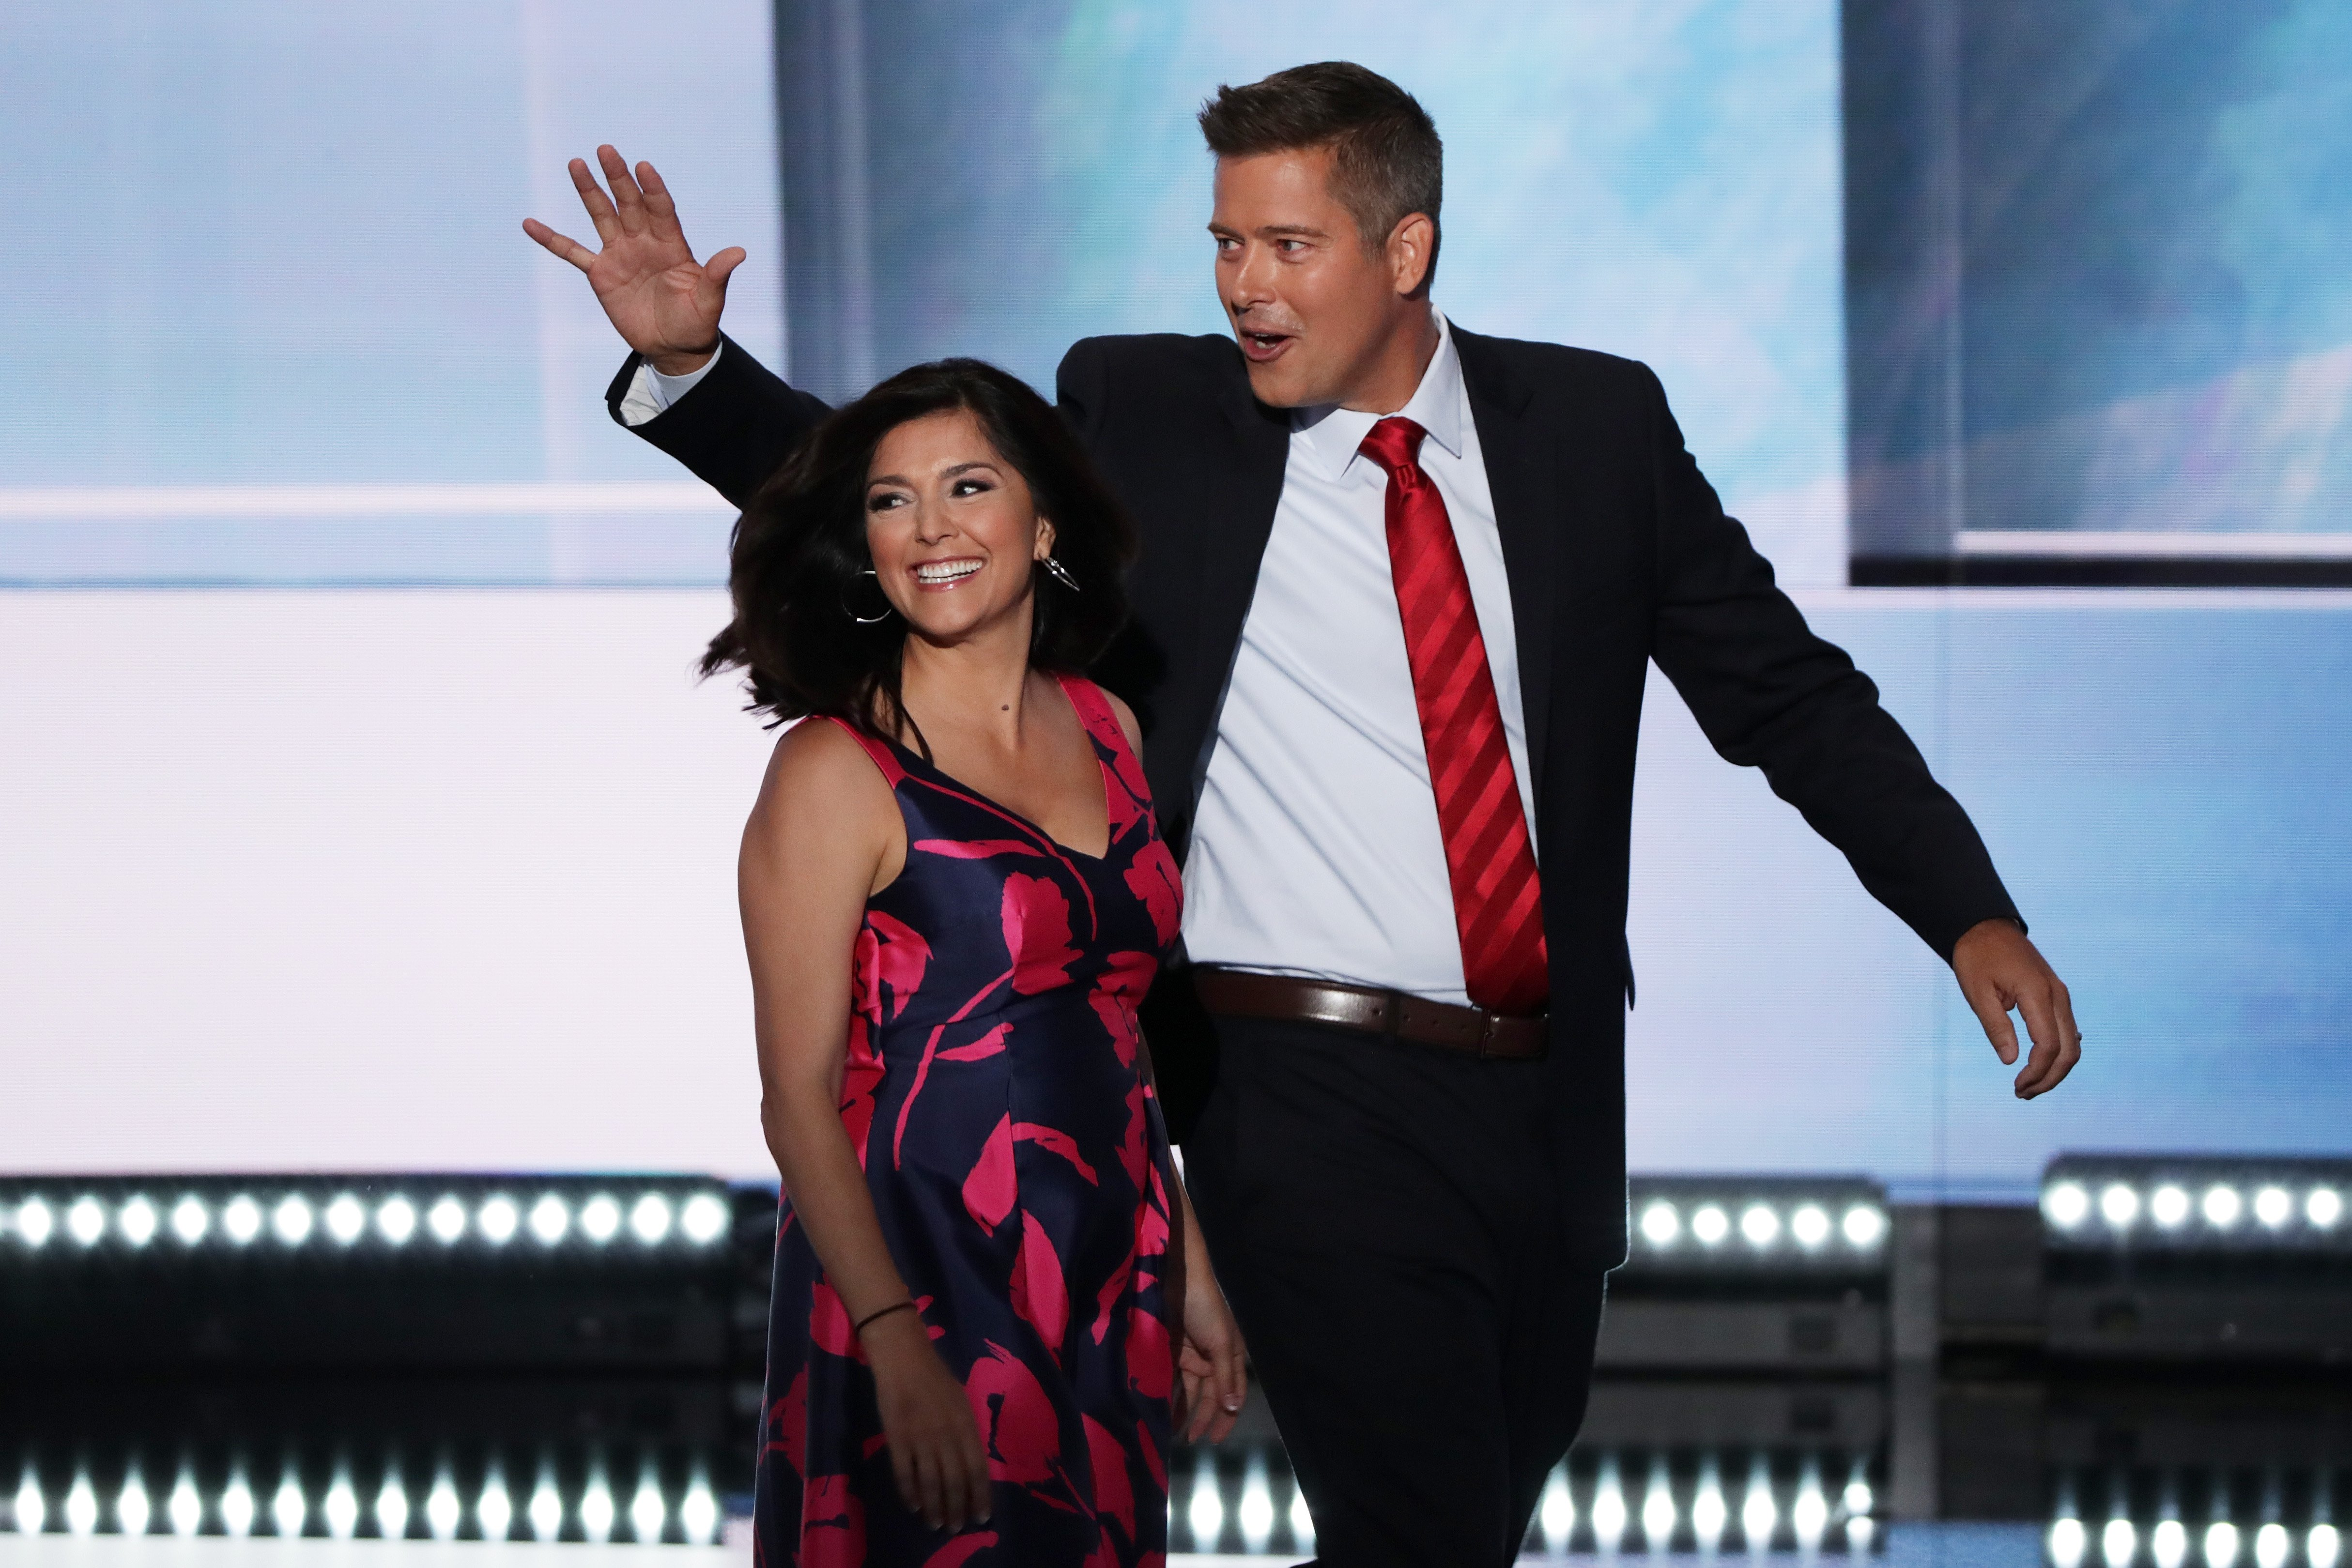 U.S. Rep. Sean Duffy along with his wife Rachel Campos-Duffy walk on stage on July 18, 2016 |Photo: Getty Images